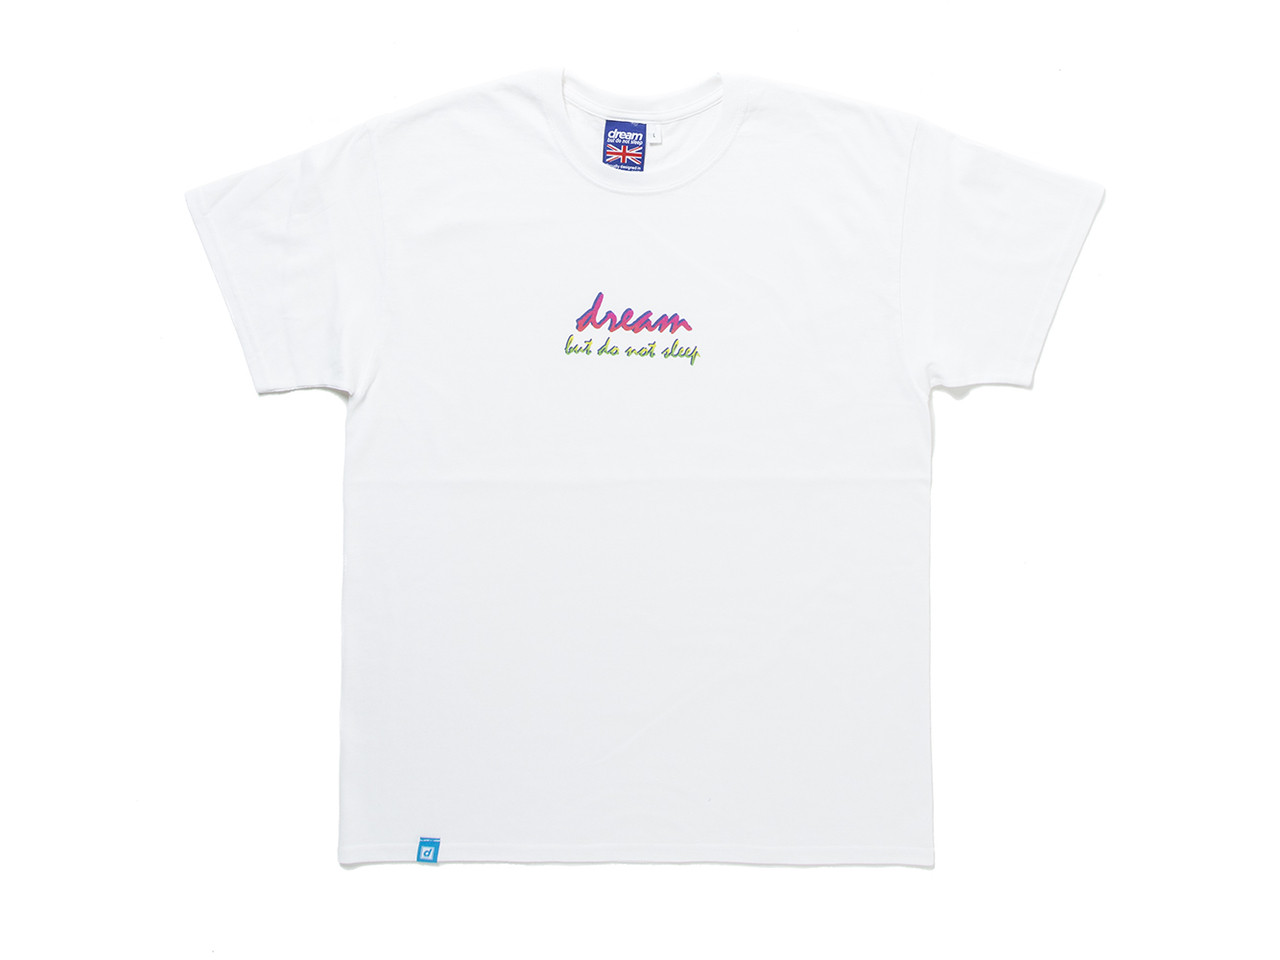 90s Logo Design On White Short Sleeved T-shirt